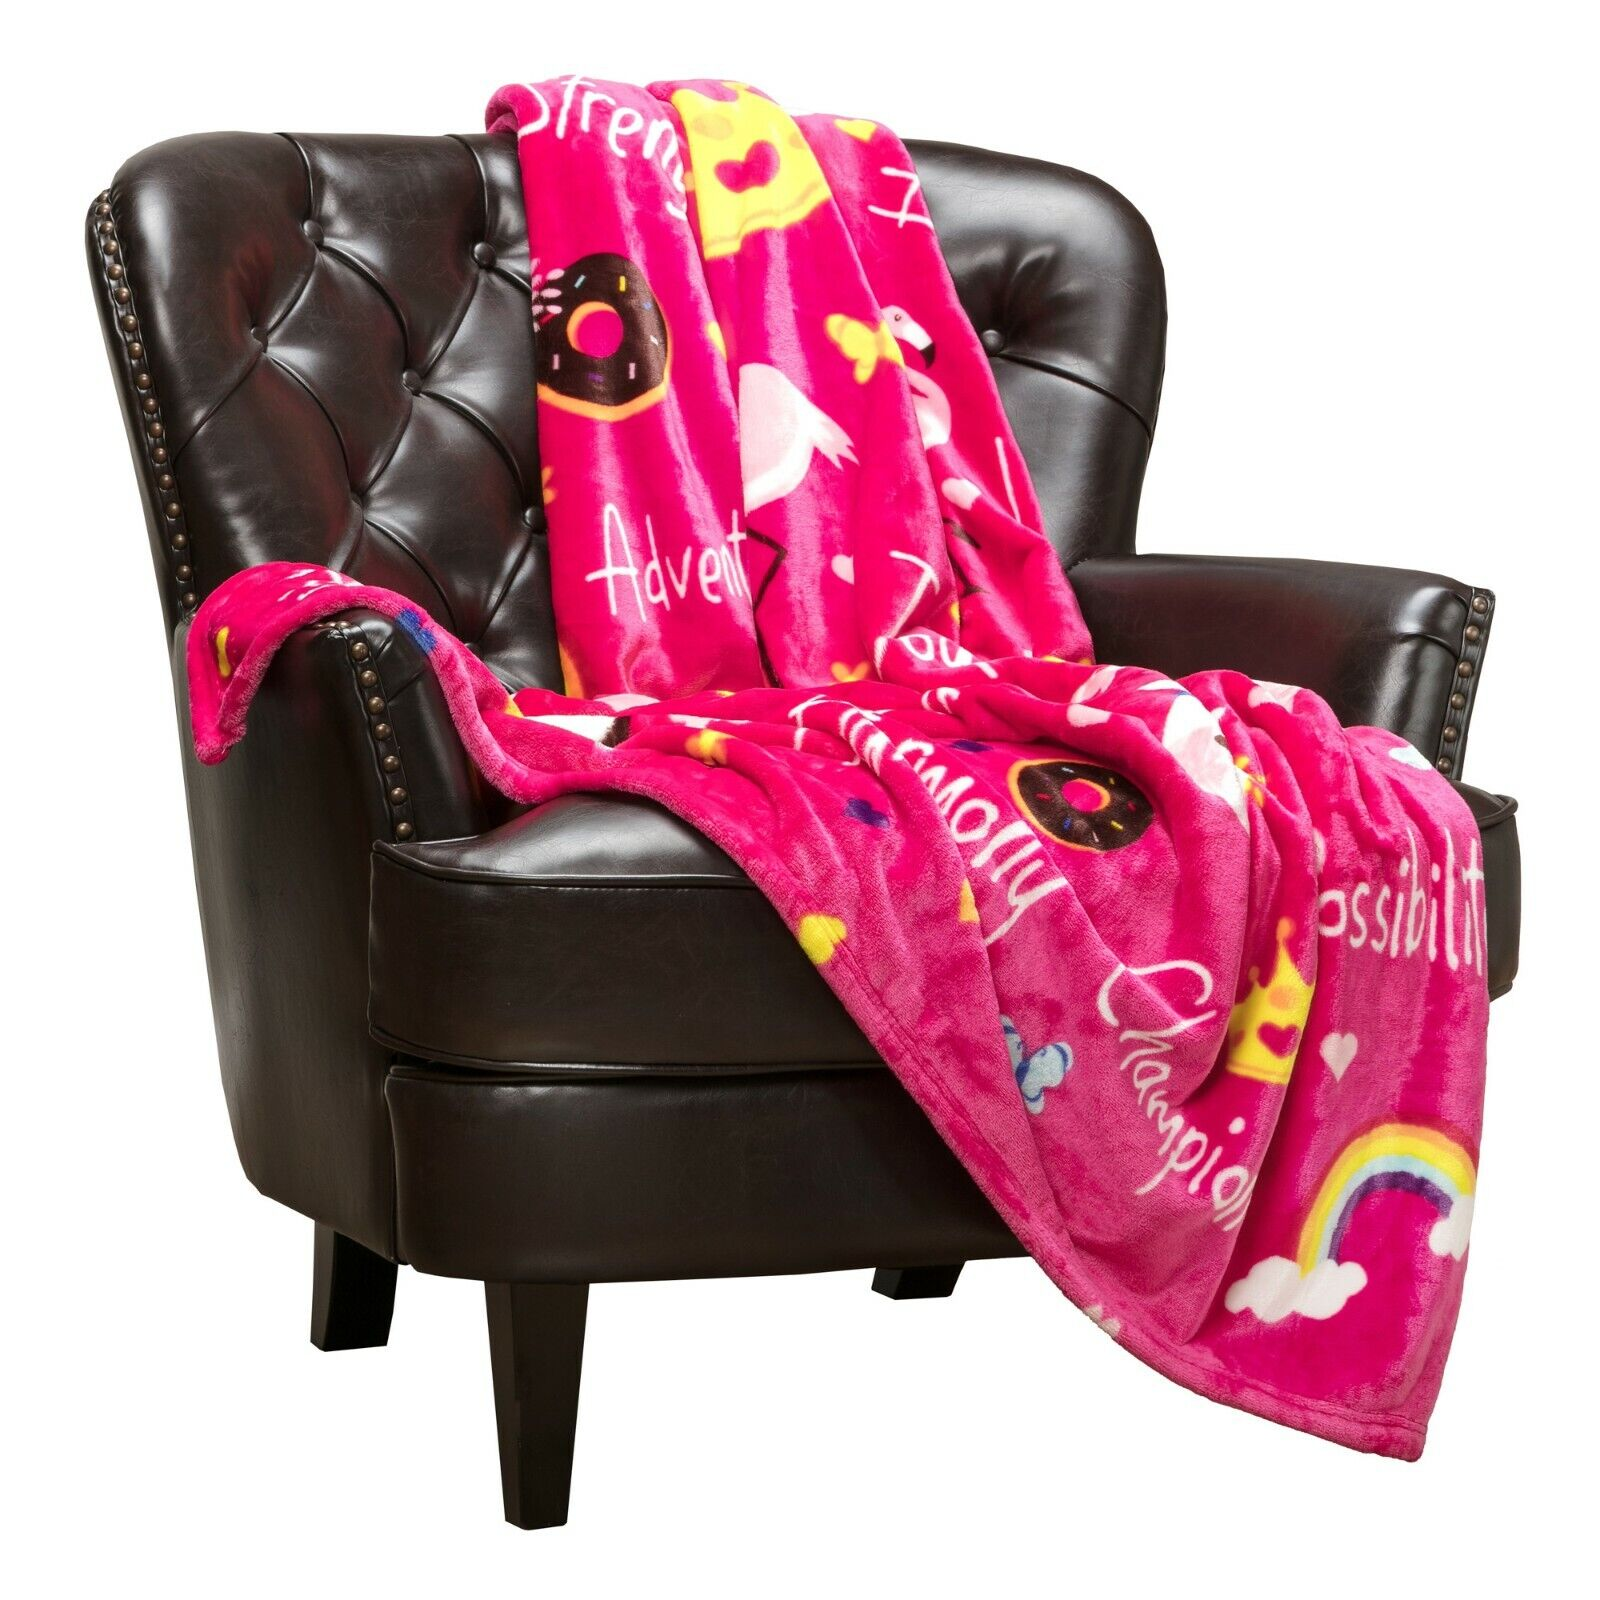 Chanasya Cozy Imagination Story Blanket for Children Kids To